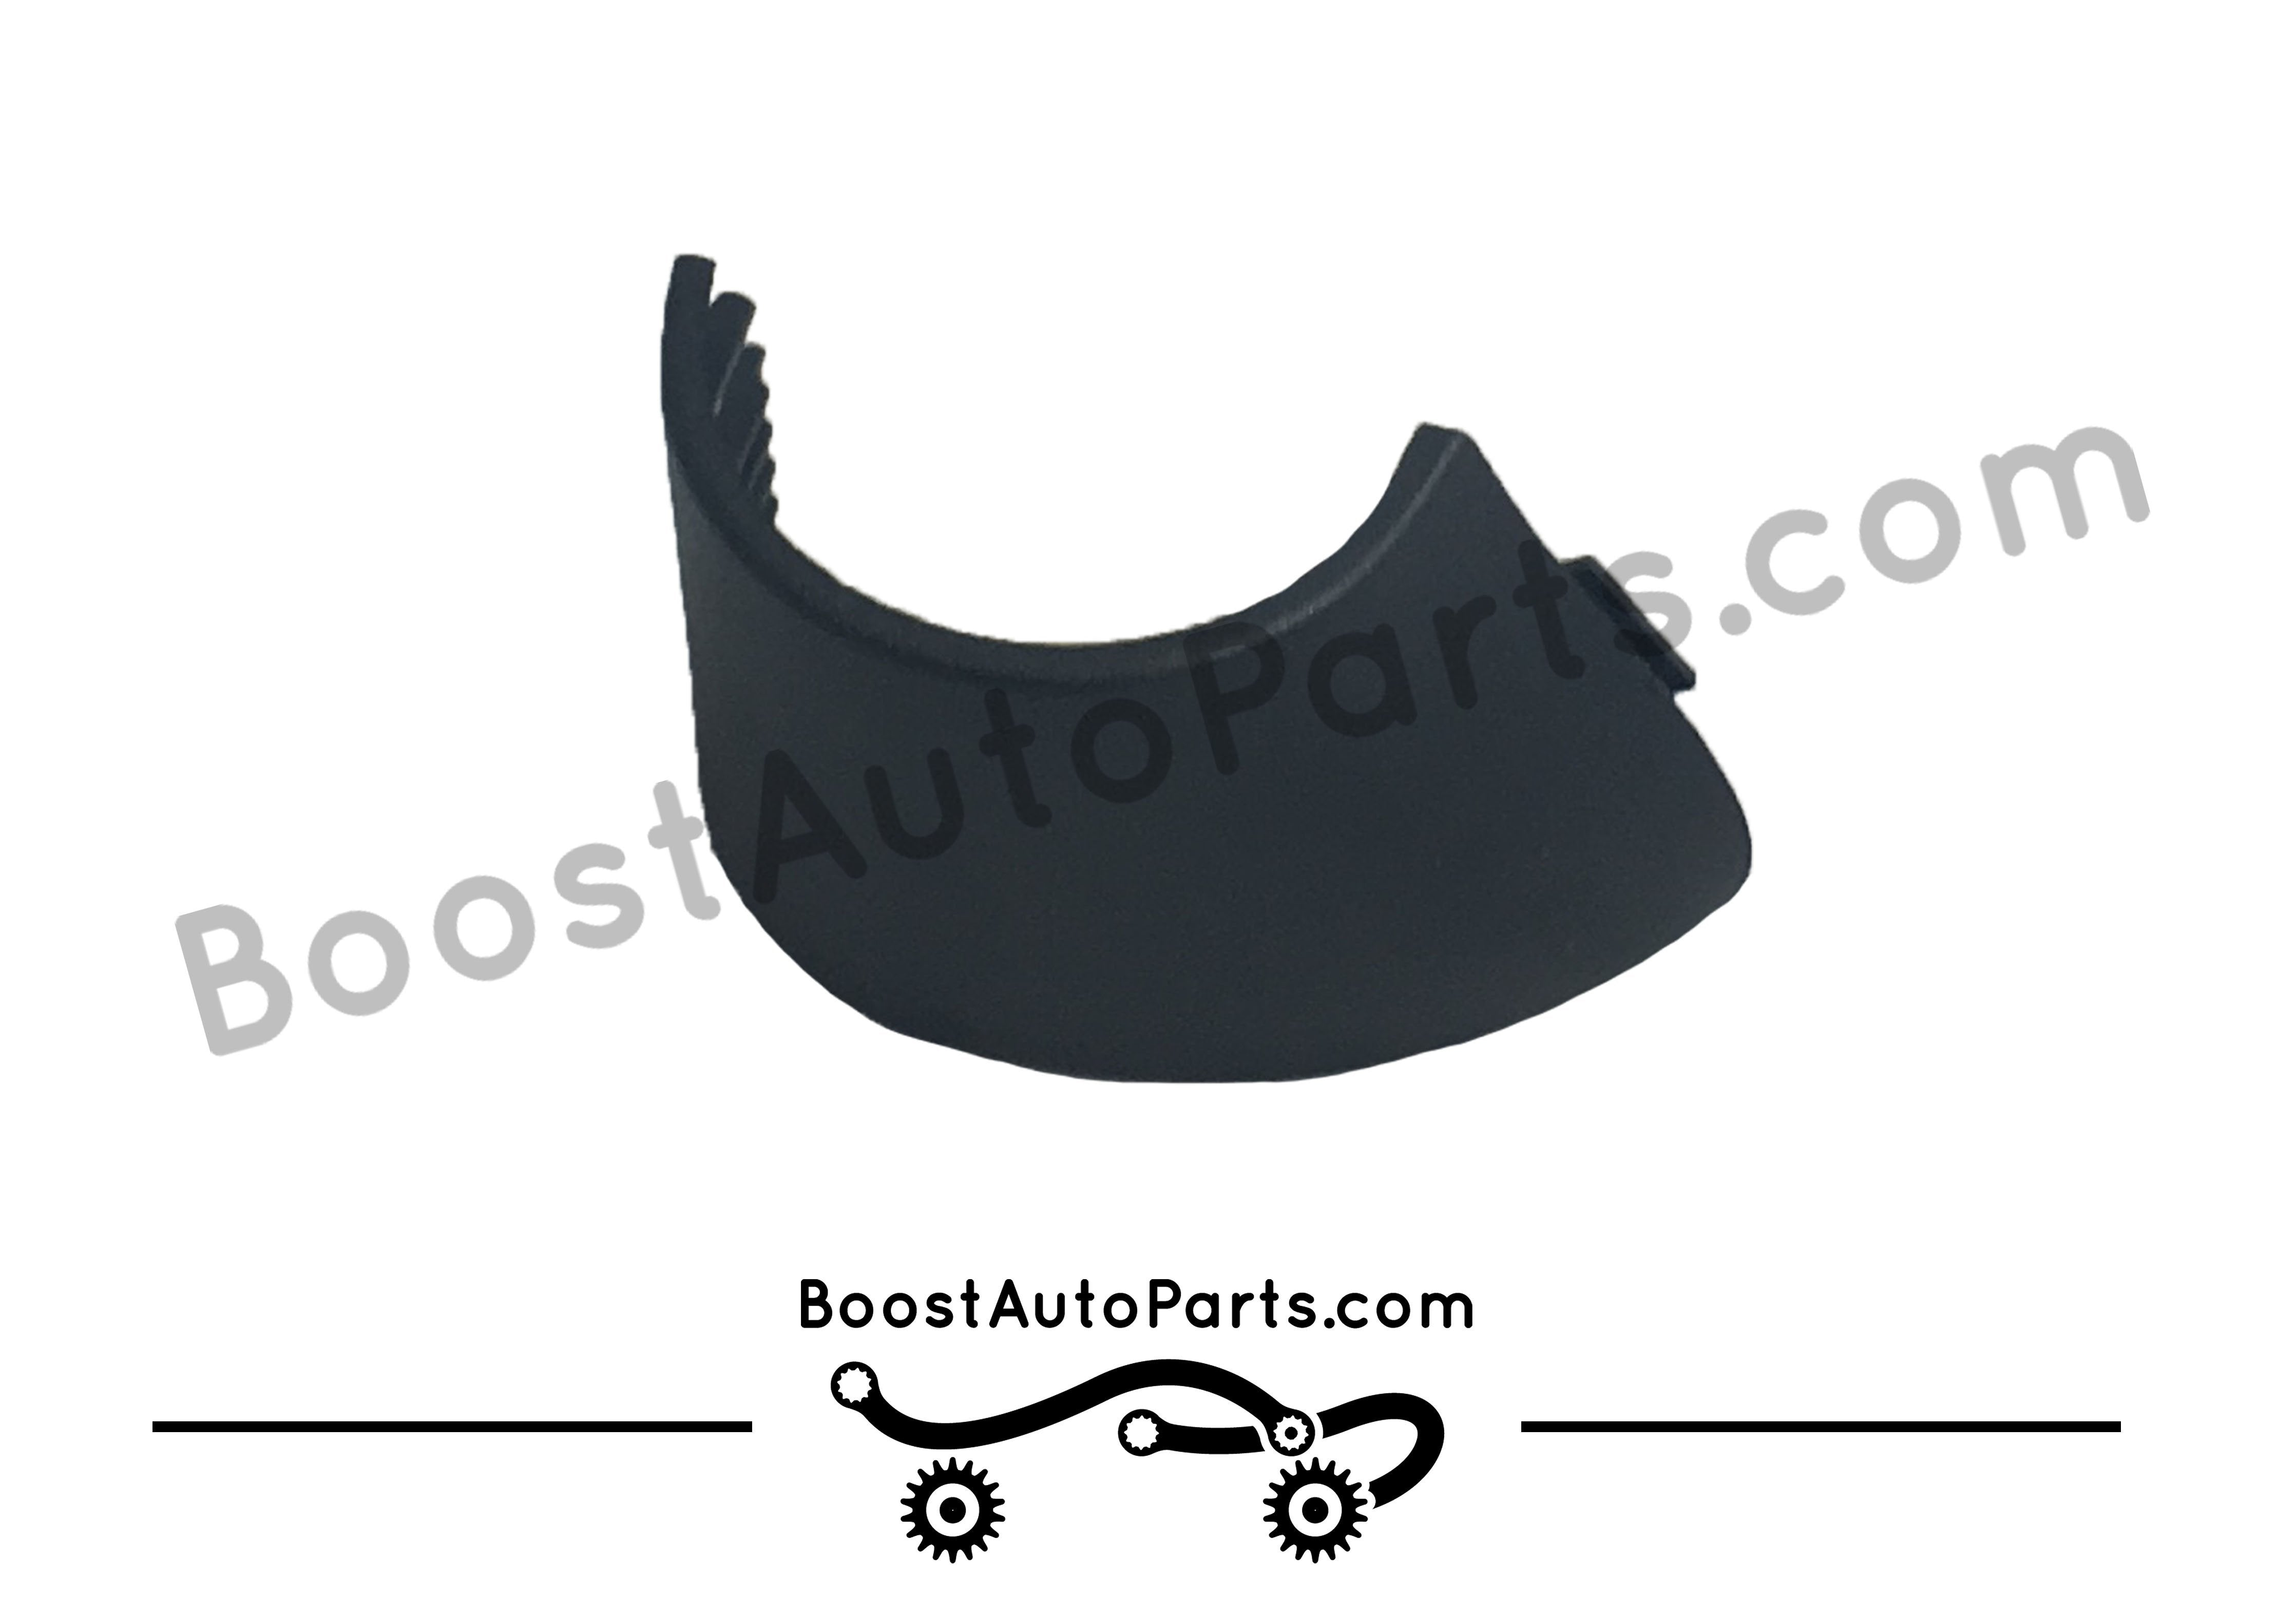 Tow Mirror Hinge Covers Boost Auto Parts 2003 Chevy Wiring Diagram